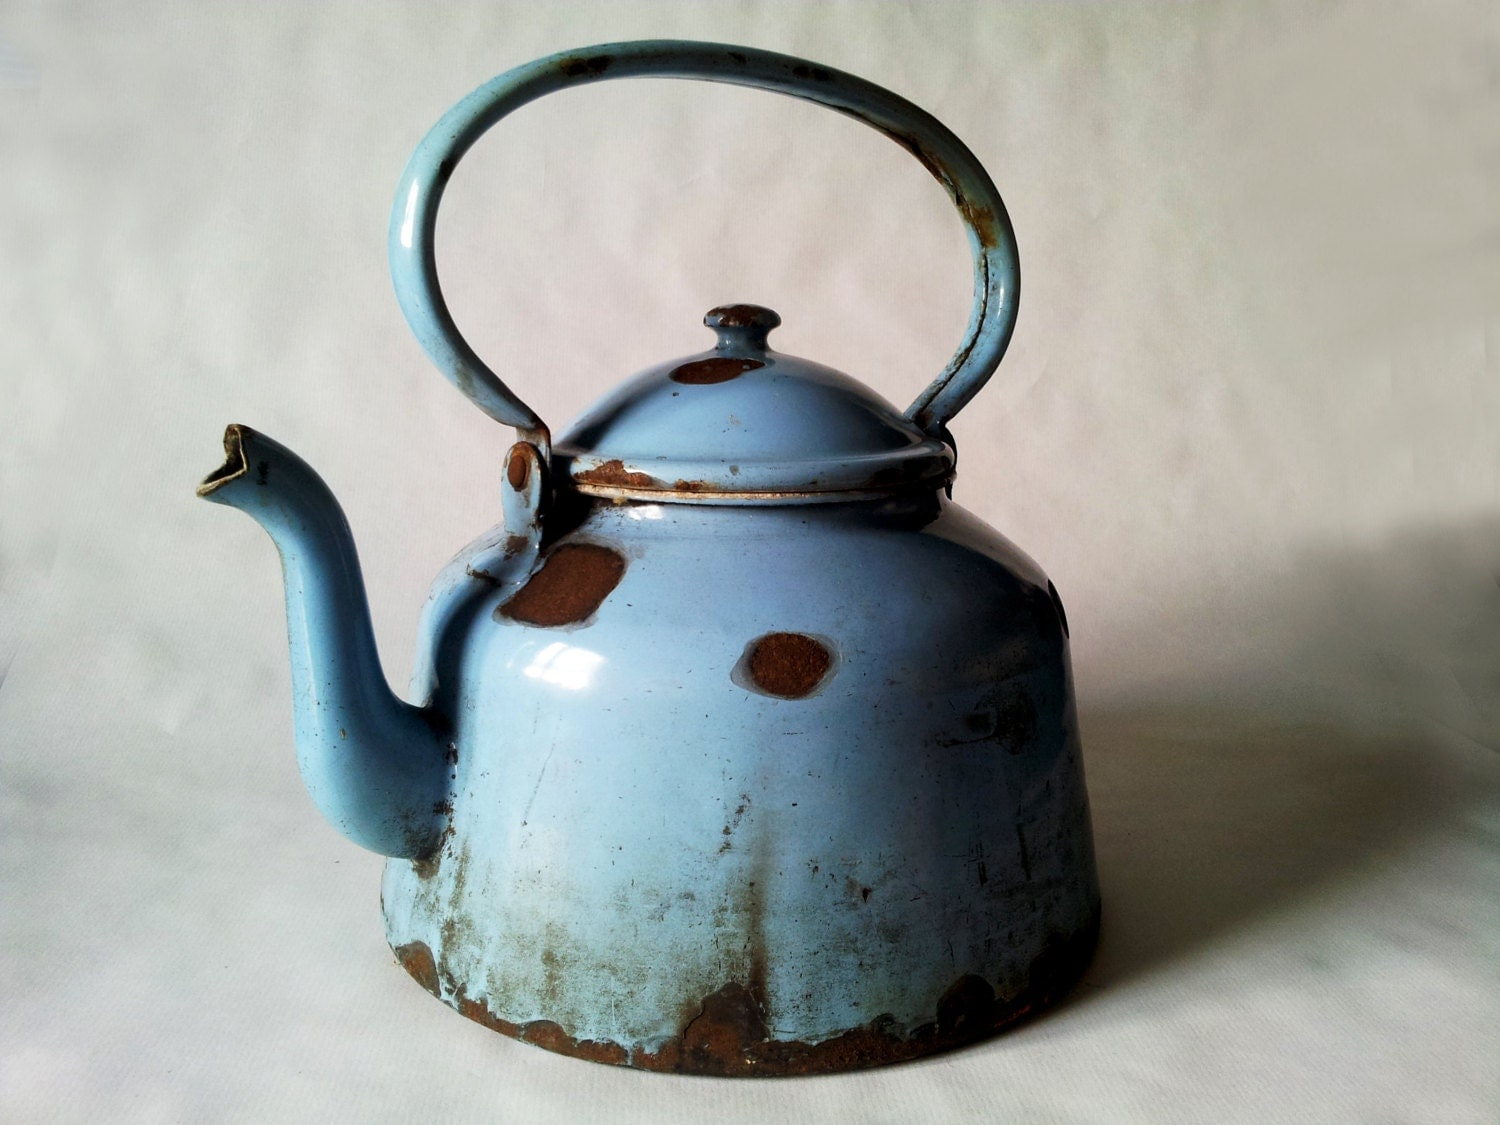 French Vintage ENAMELWARE TEAPOT kettle rustic blue LARGE - PetitesChosesDeLaVie